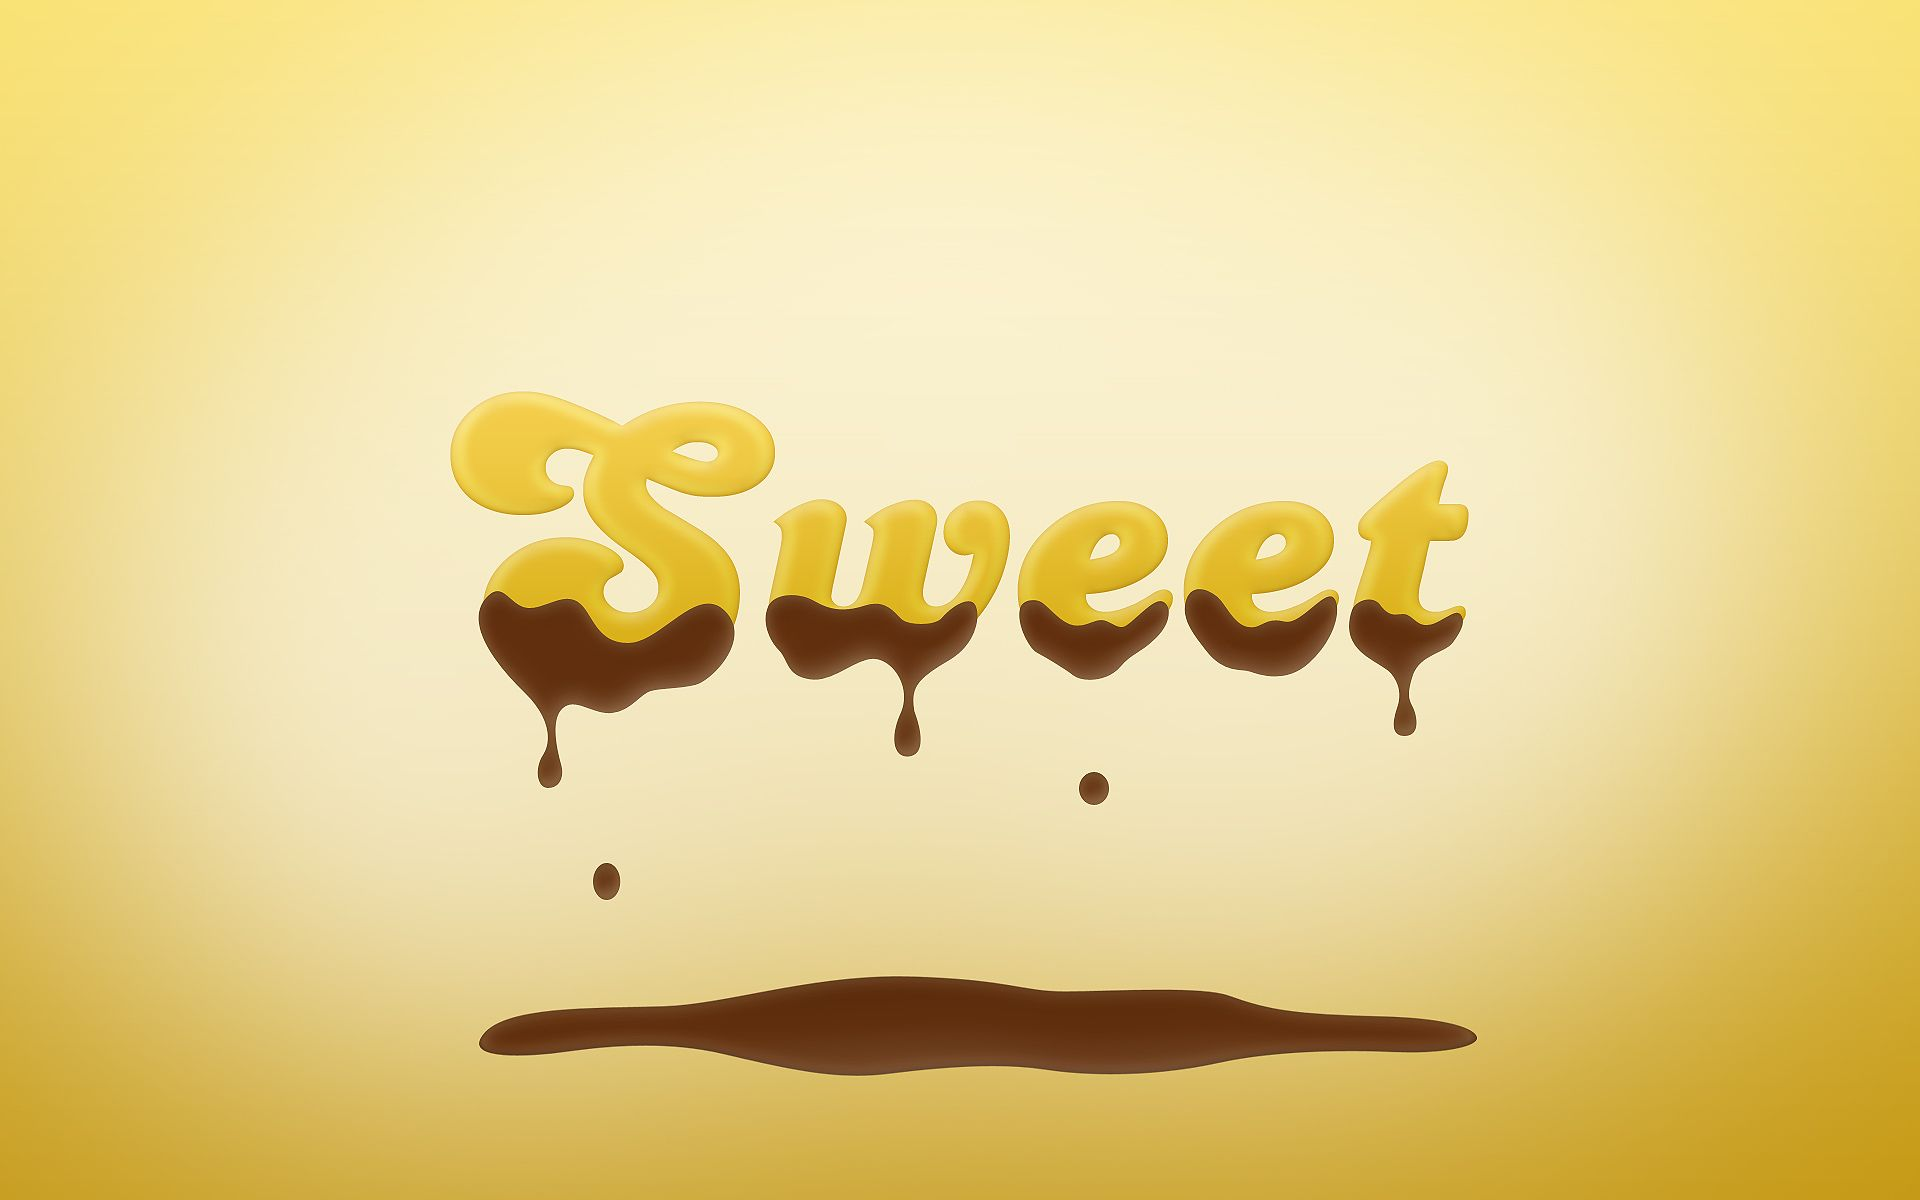 Sweet chocolate coated text effect text effect pinterest sweet chocolate coated text effect baditri Choice Image